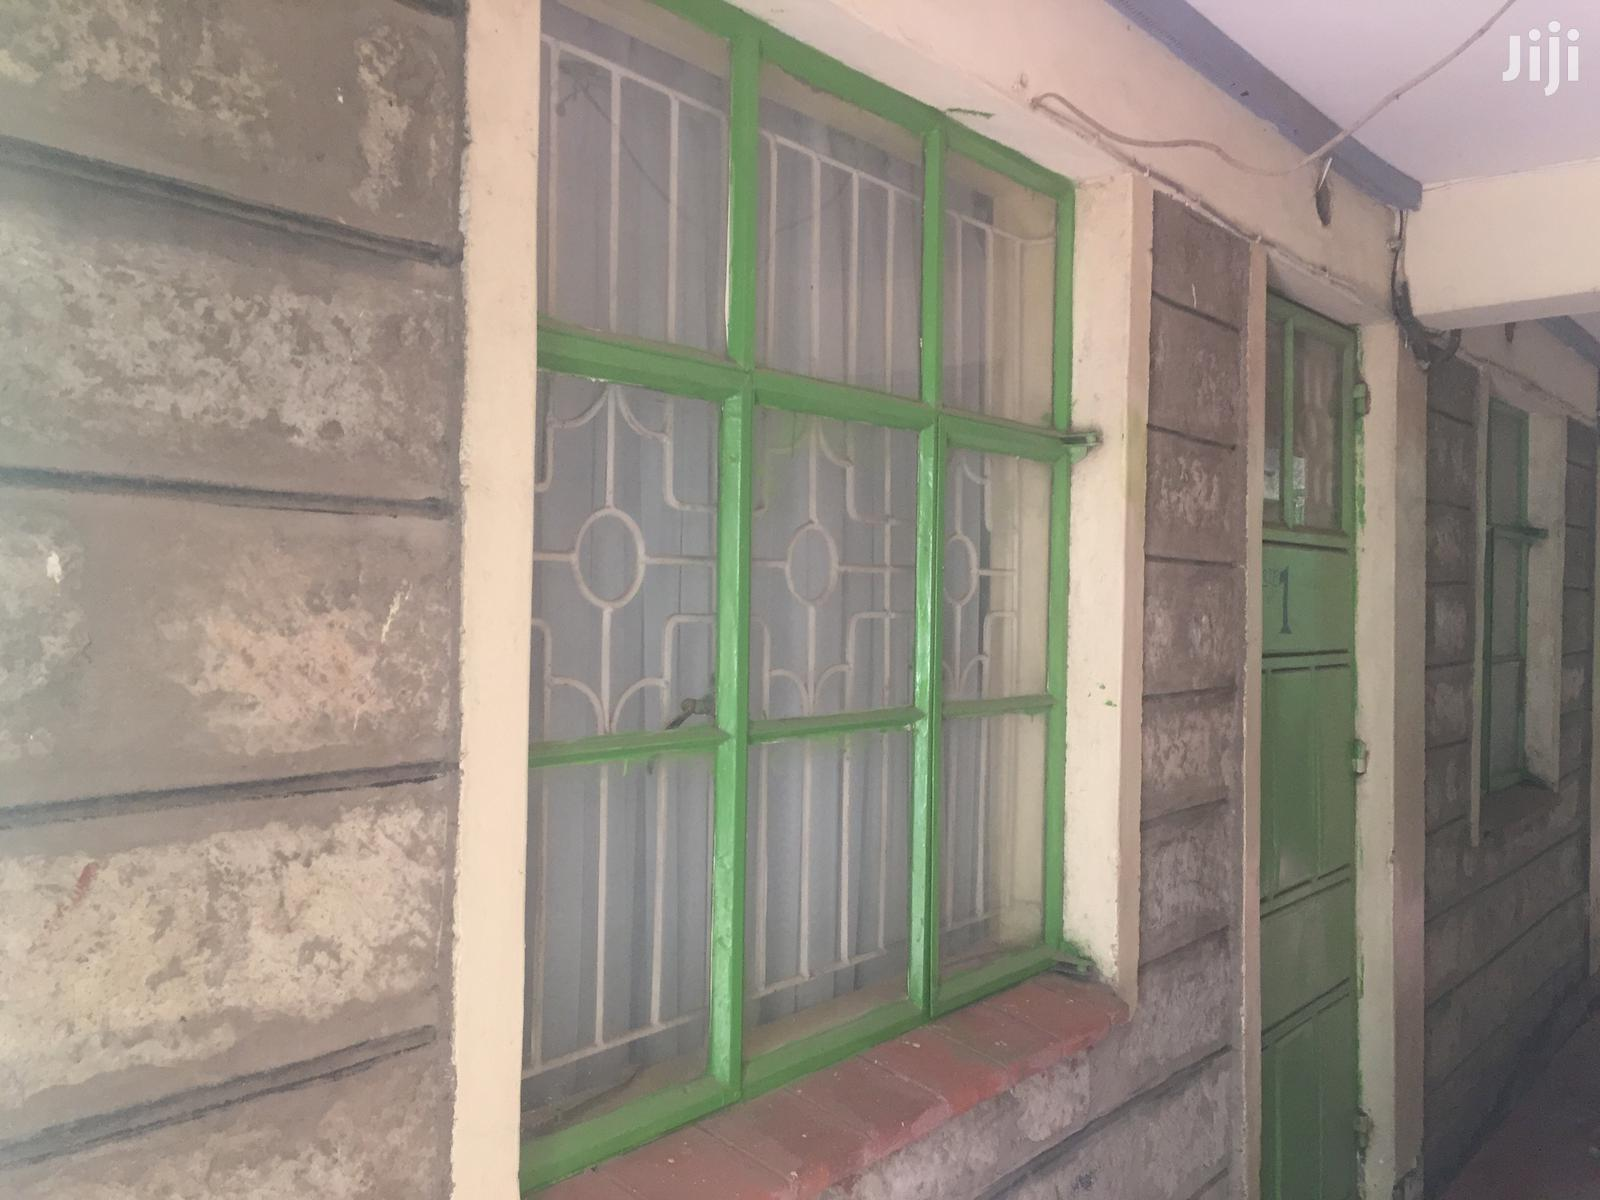 One Bedroom to Let at Tena Estate   Houses & Apartments For Rent for sale in Donholm, Nairobi, Kenya